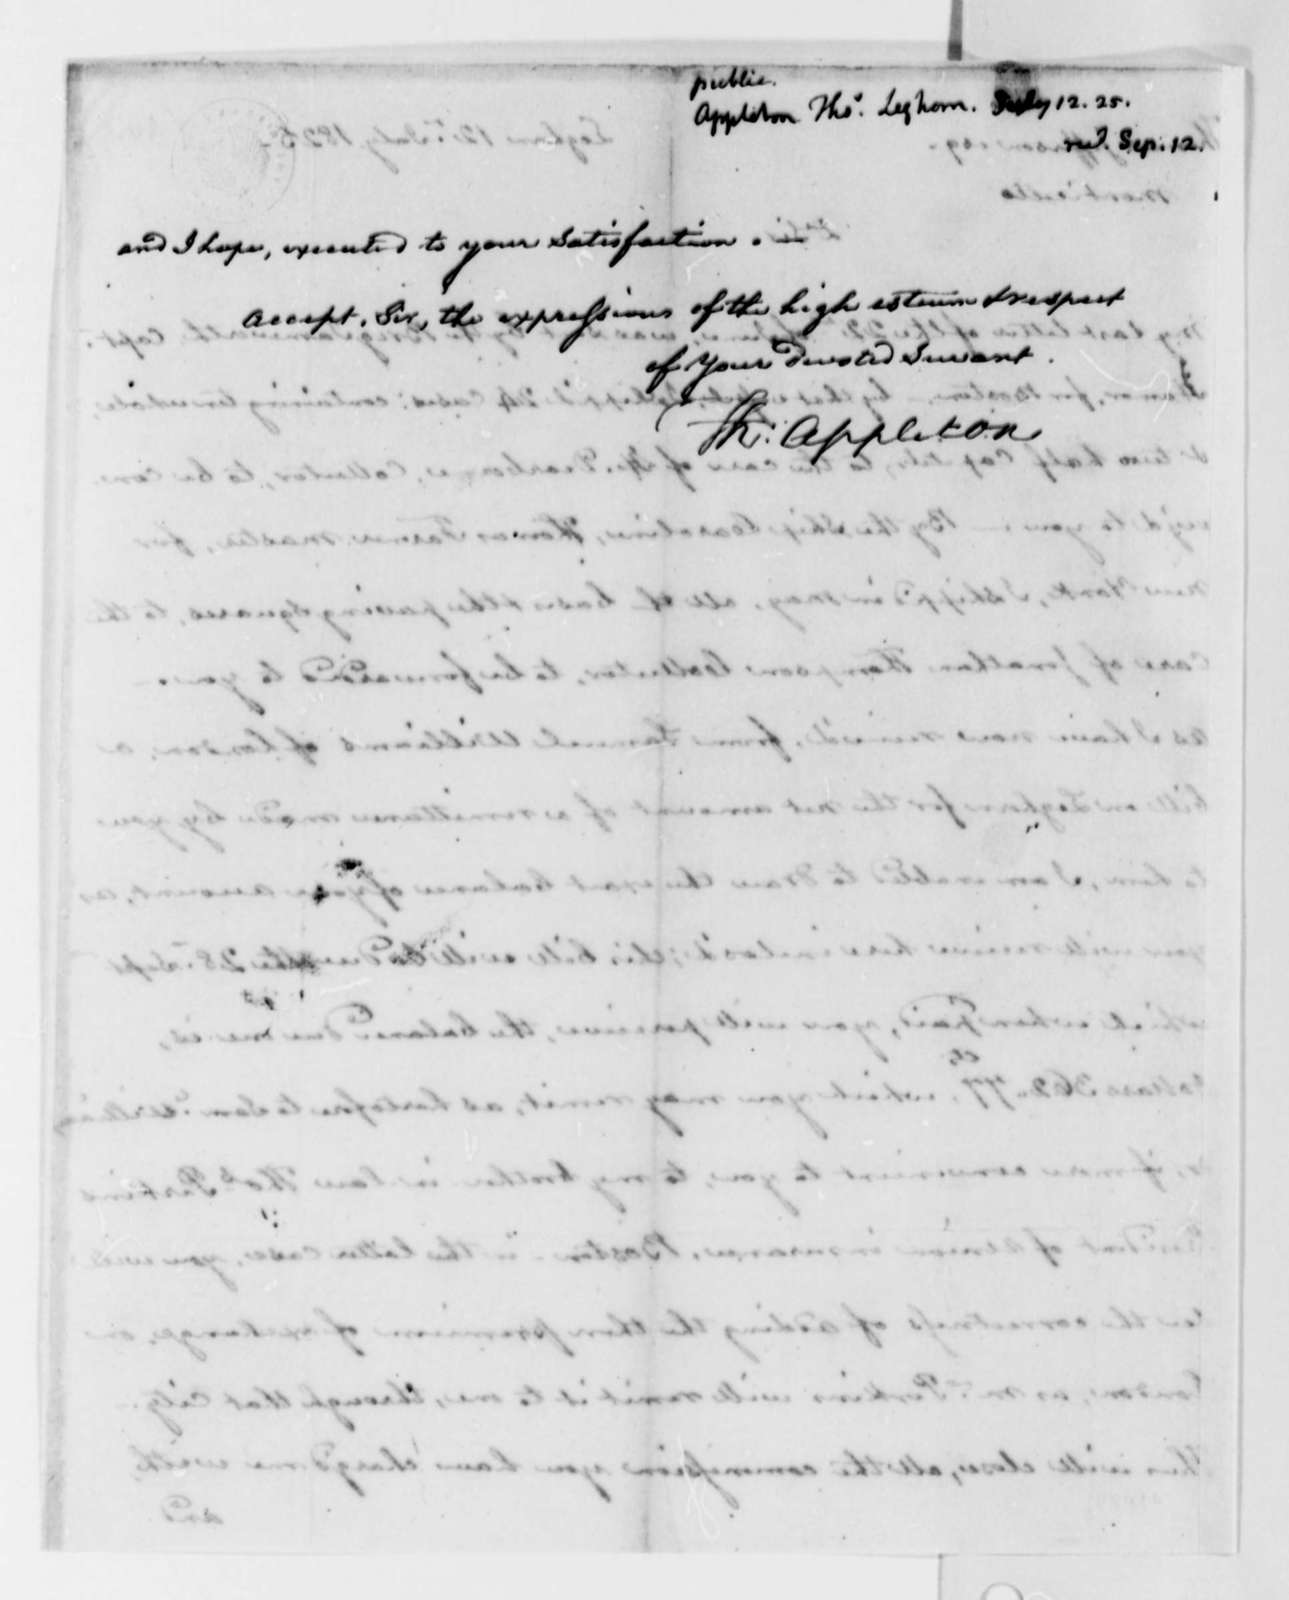 Thomas Appleton to Thomas Jefferson, July 12, 1825